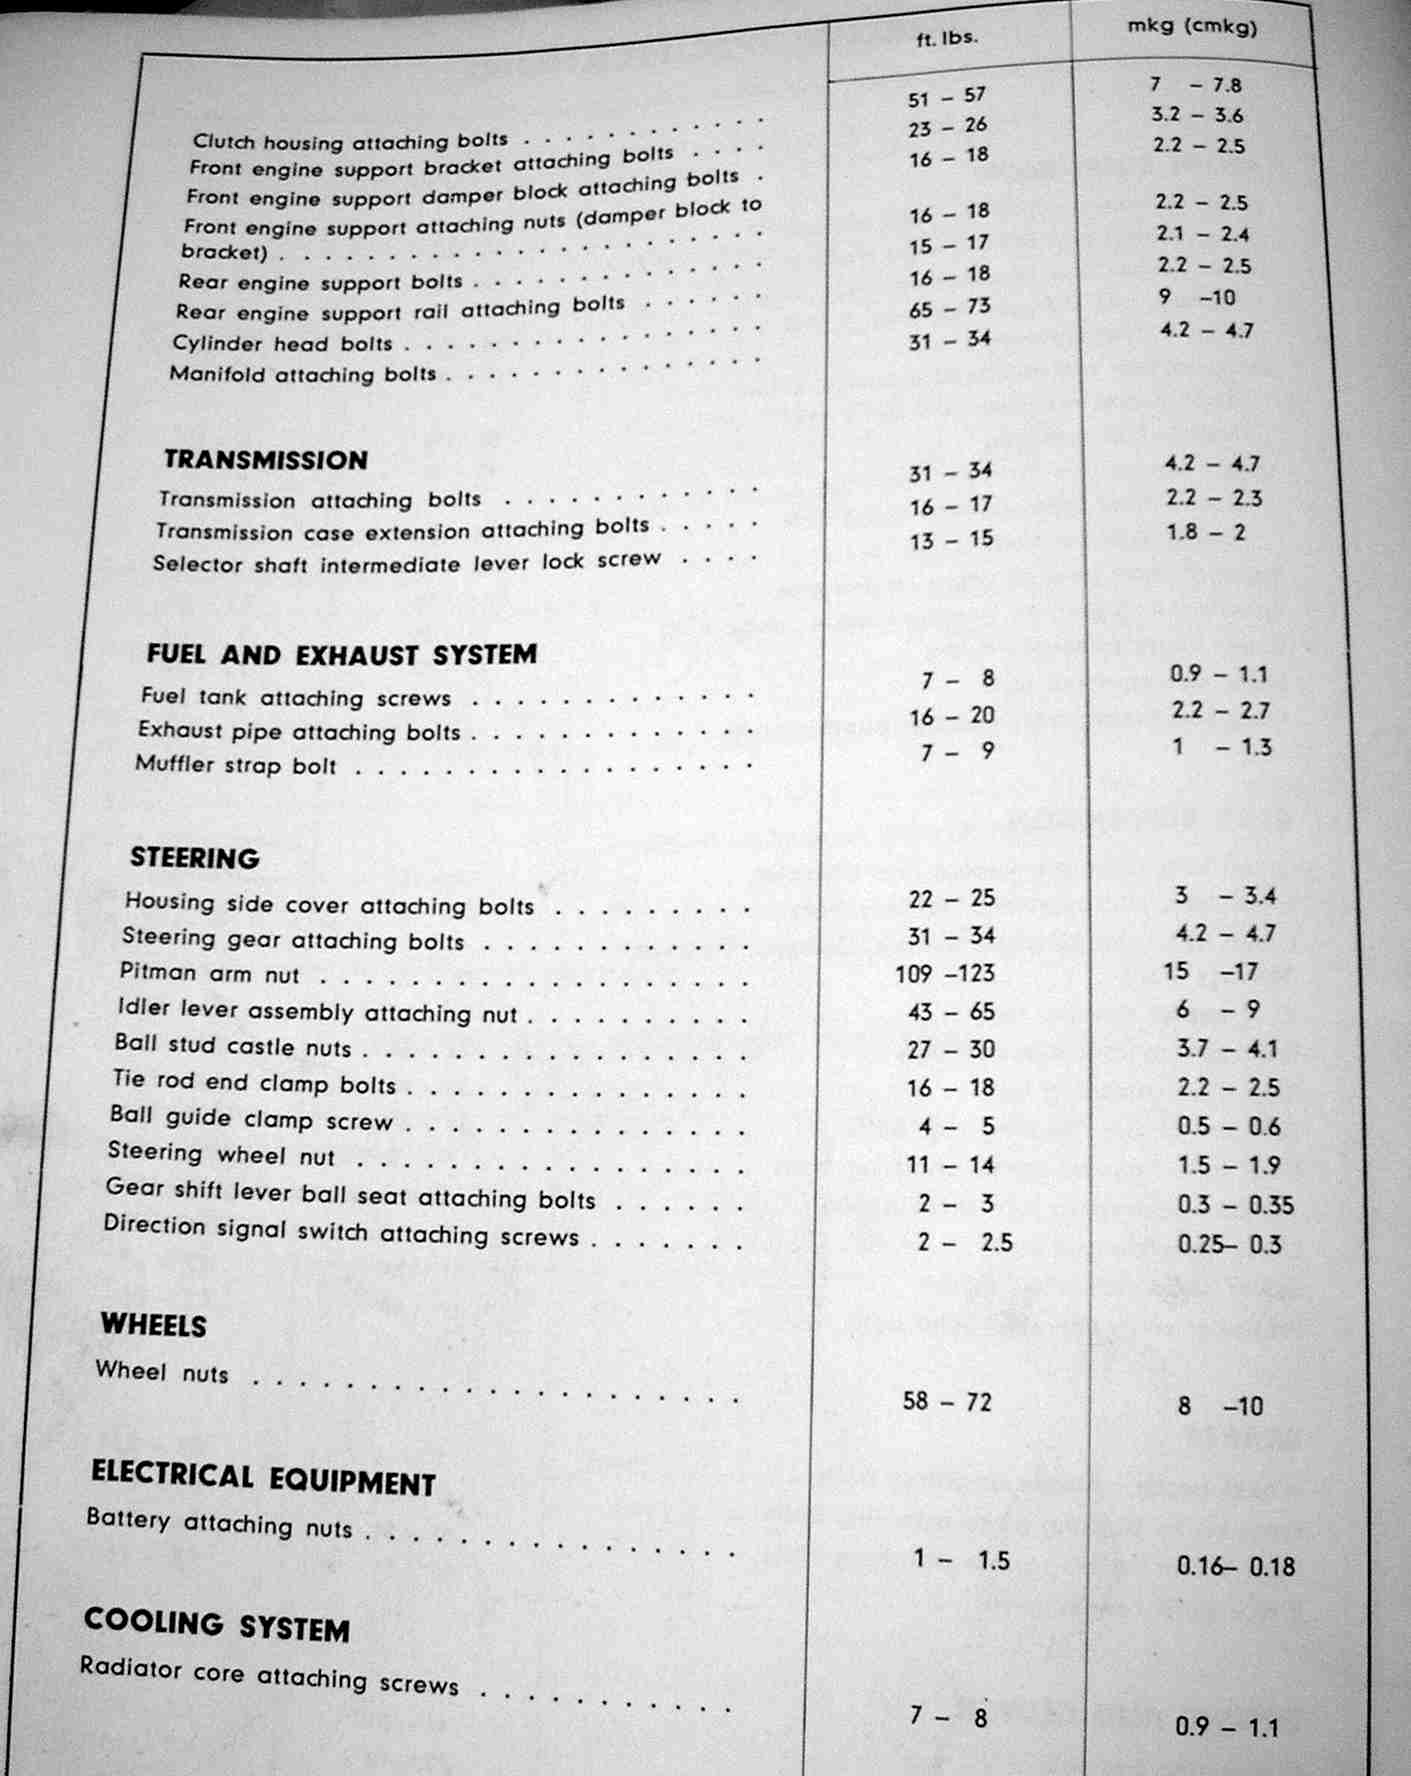 Opel Rekord P Torque Specifications from 1958 shop manual - page 2